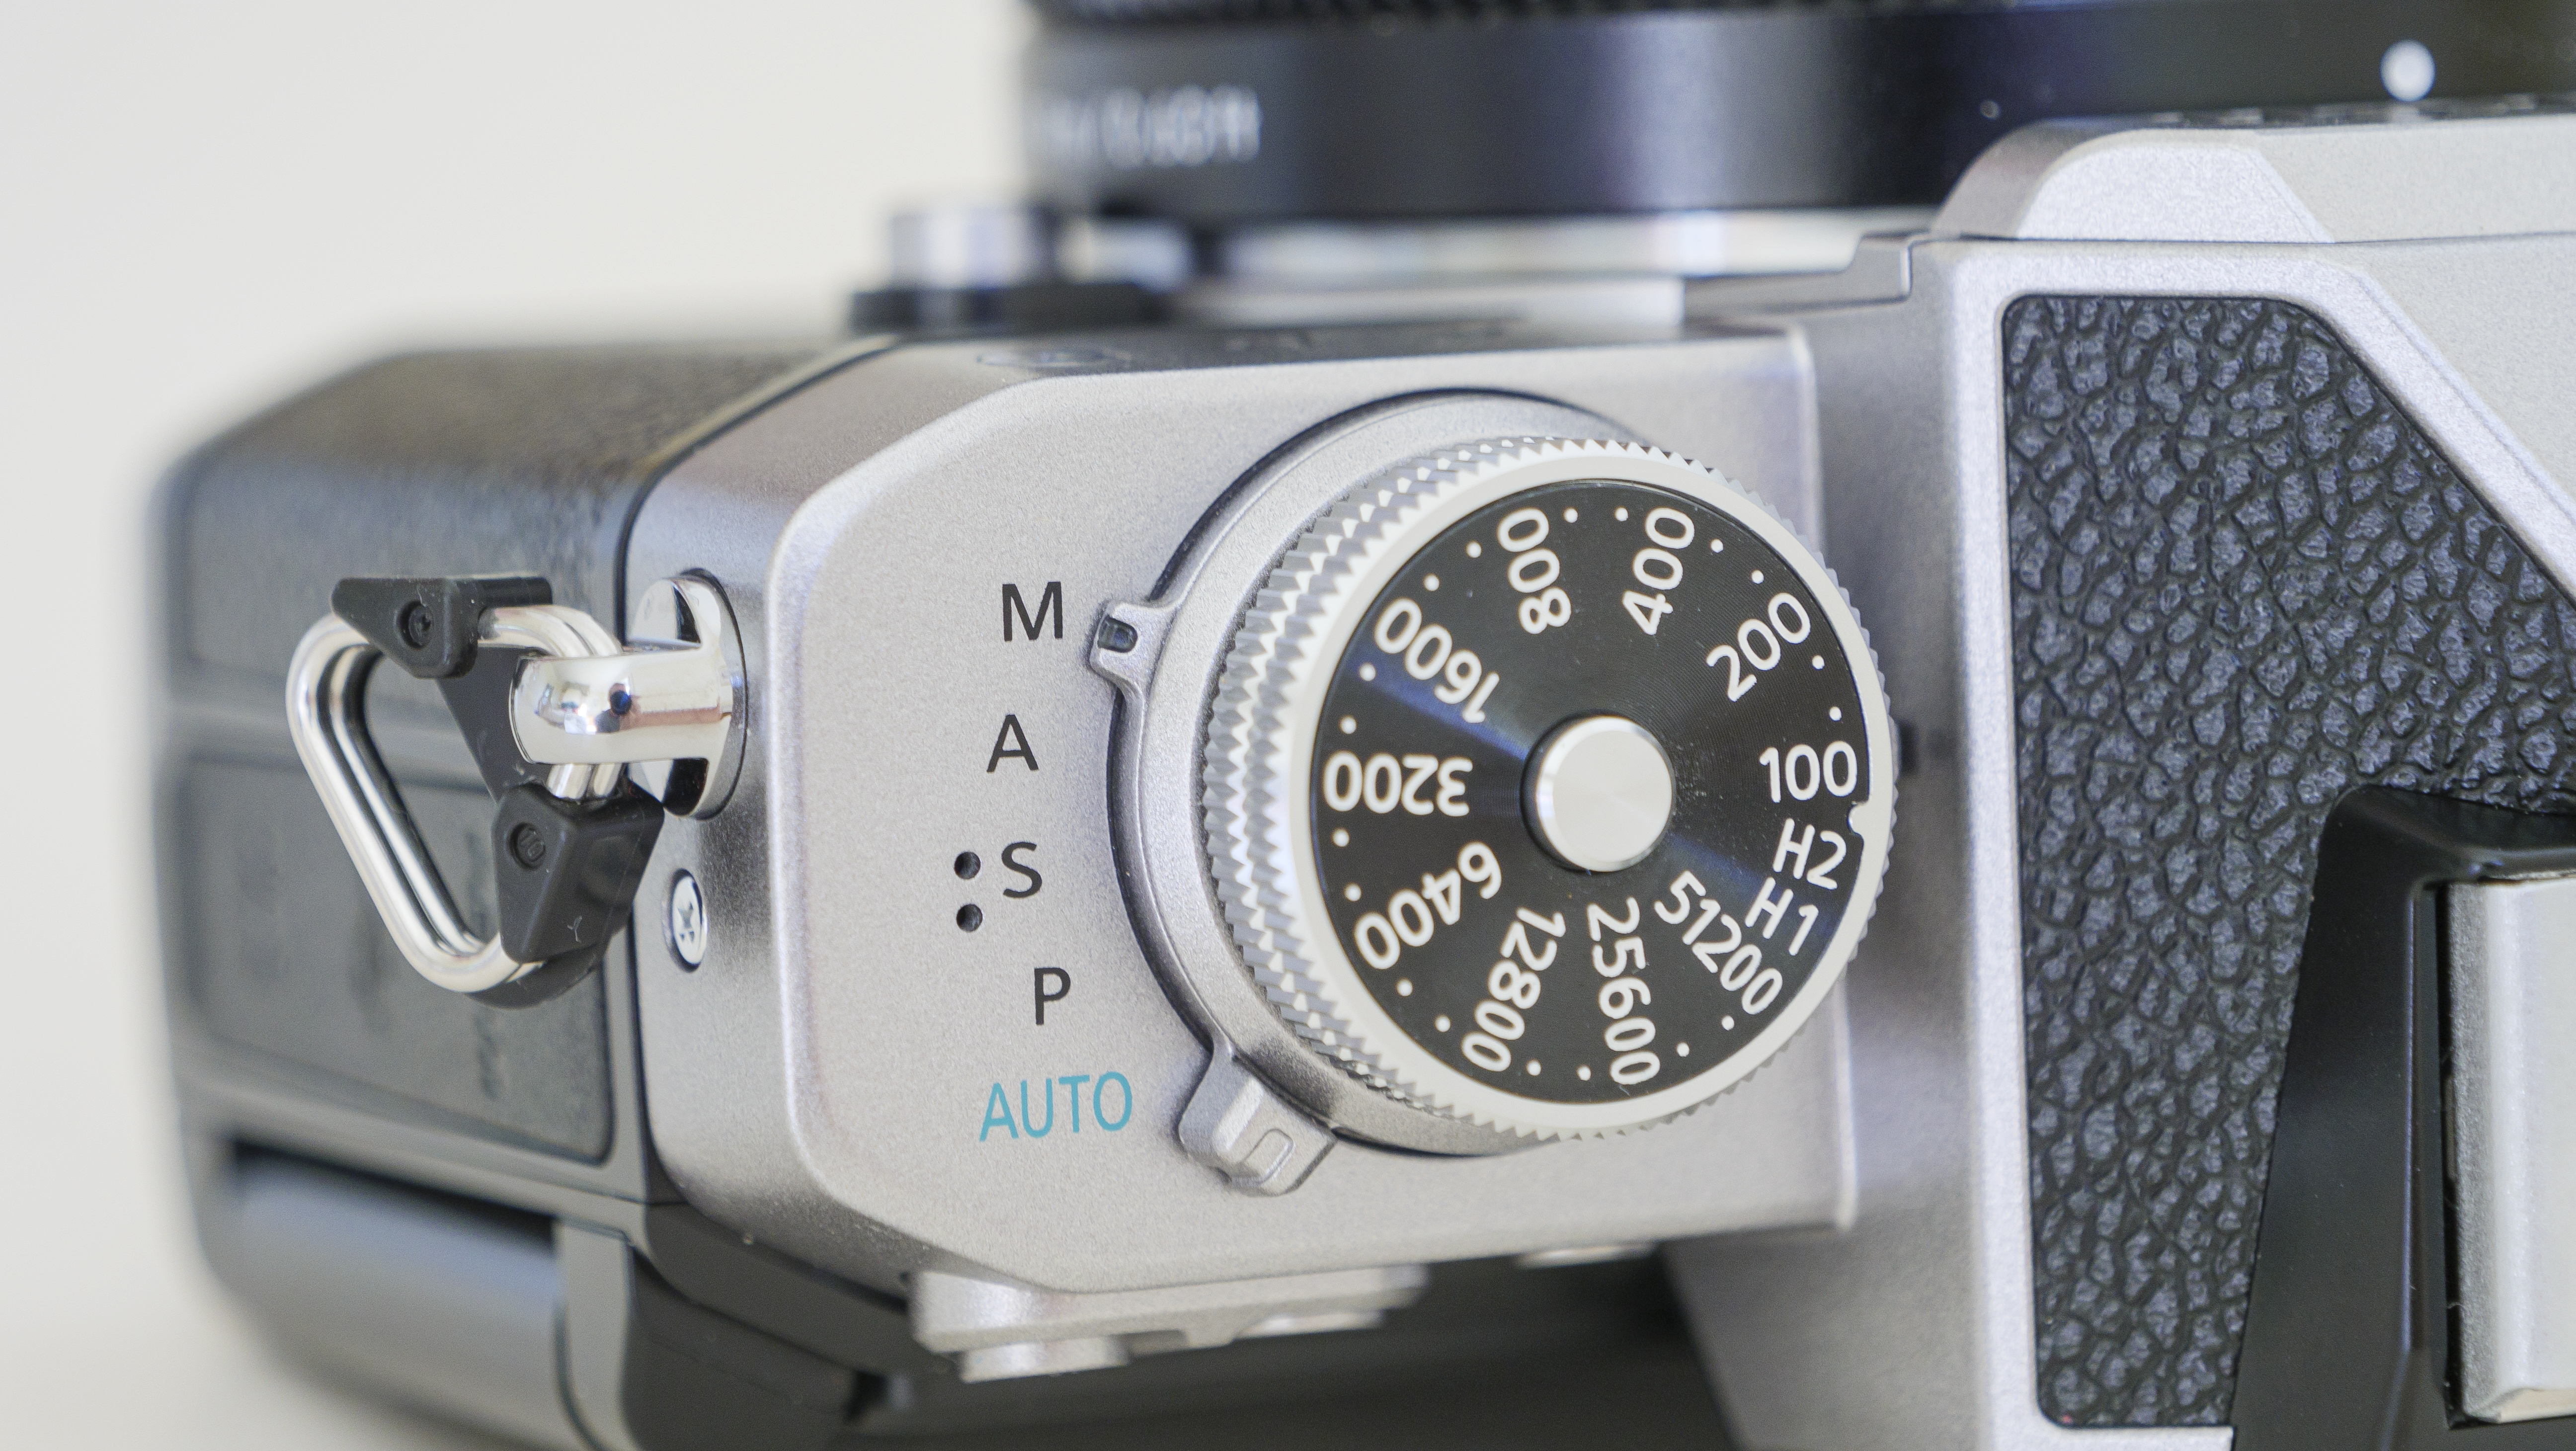 The ISO dial on the top of the Nikon Z fc camera